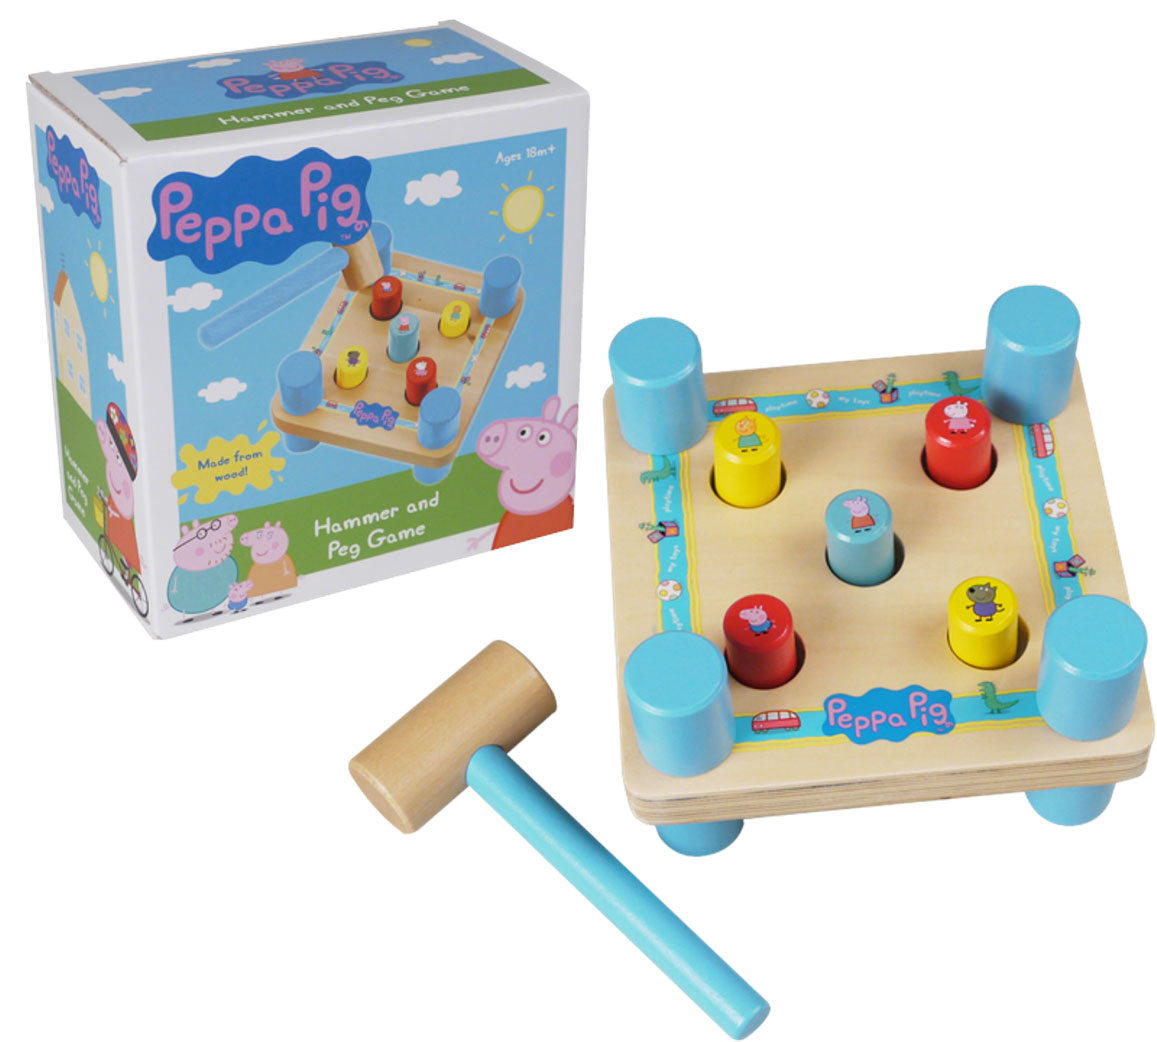 Peppa Pig Hammer & Peg Game by Tree Toys